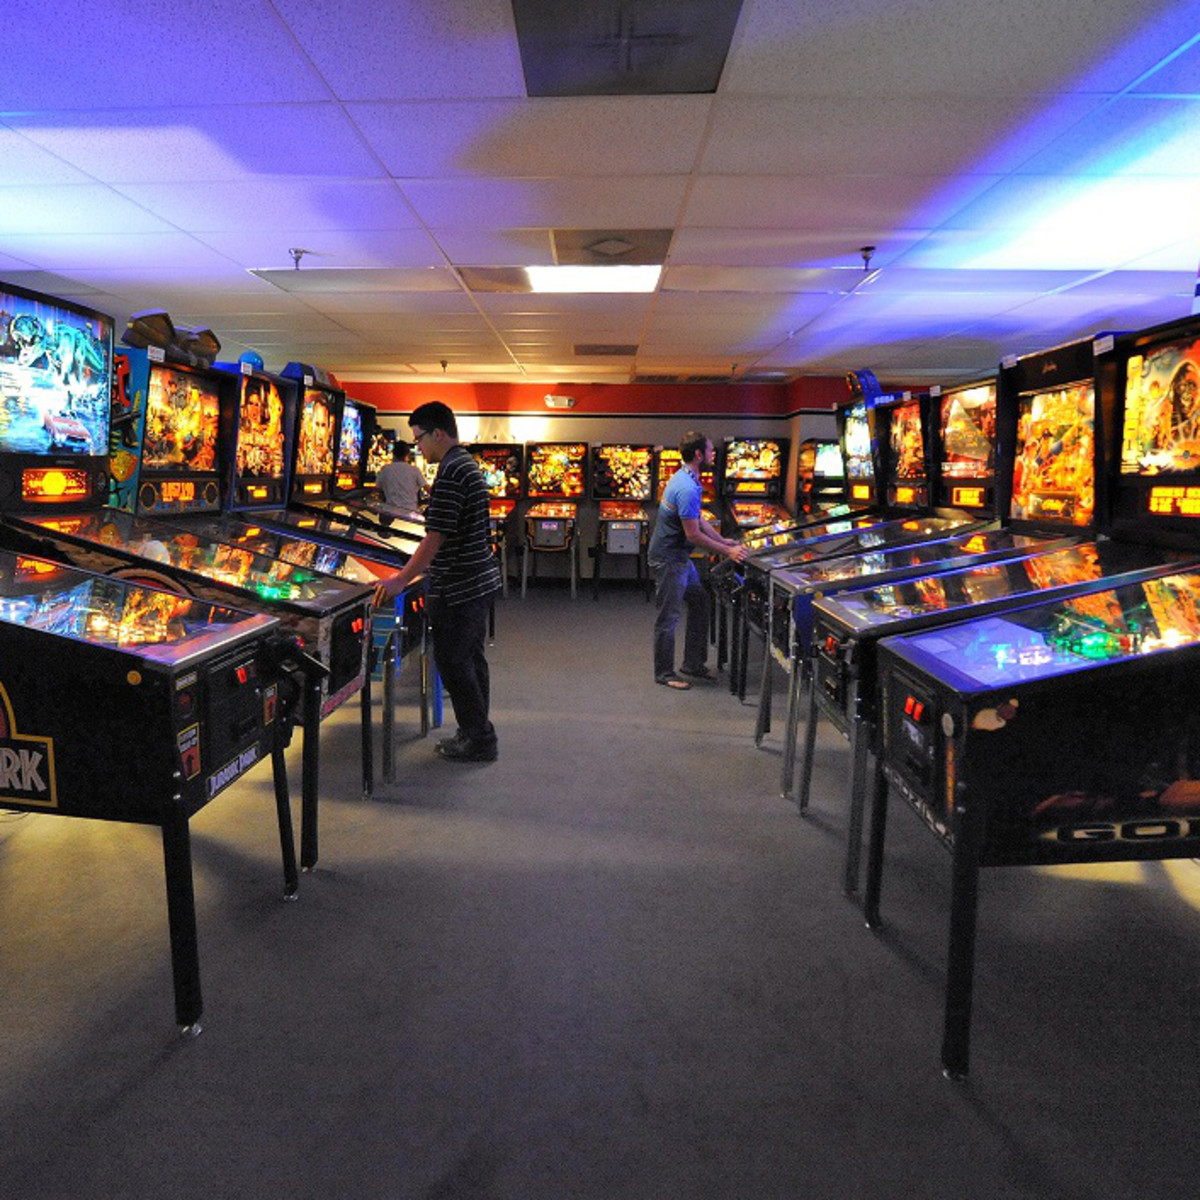 Pinballz Arcade offers a huge facility packed to the gills with games